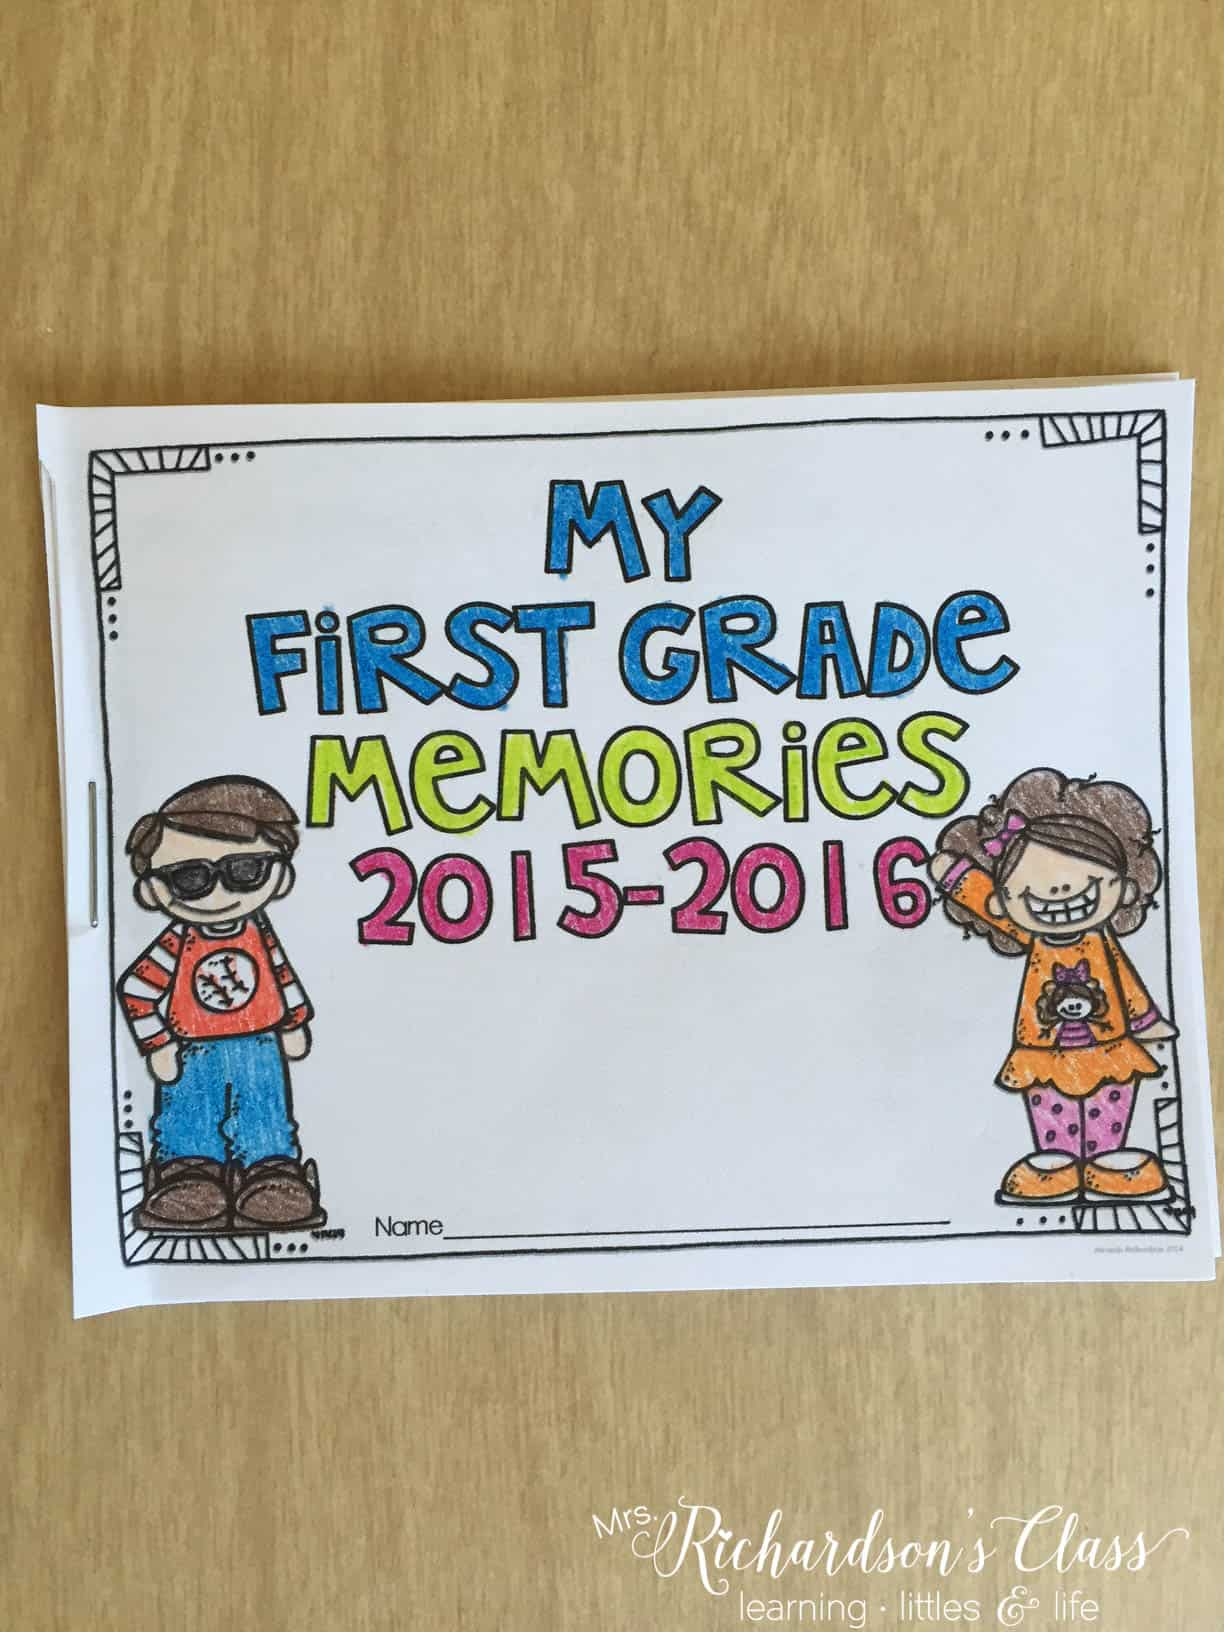 This end of year memory book is perfect for students to work on the last few weeks of school at the end of each day. Parents also loved getting it at the award ceremony as a keepsake!